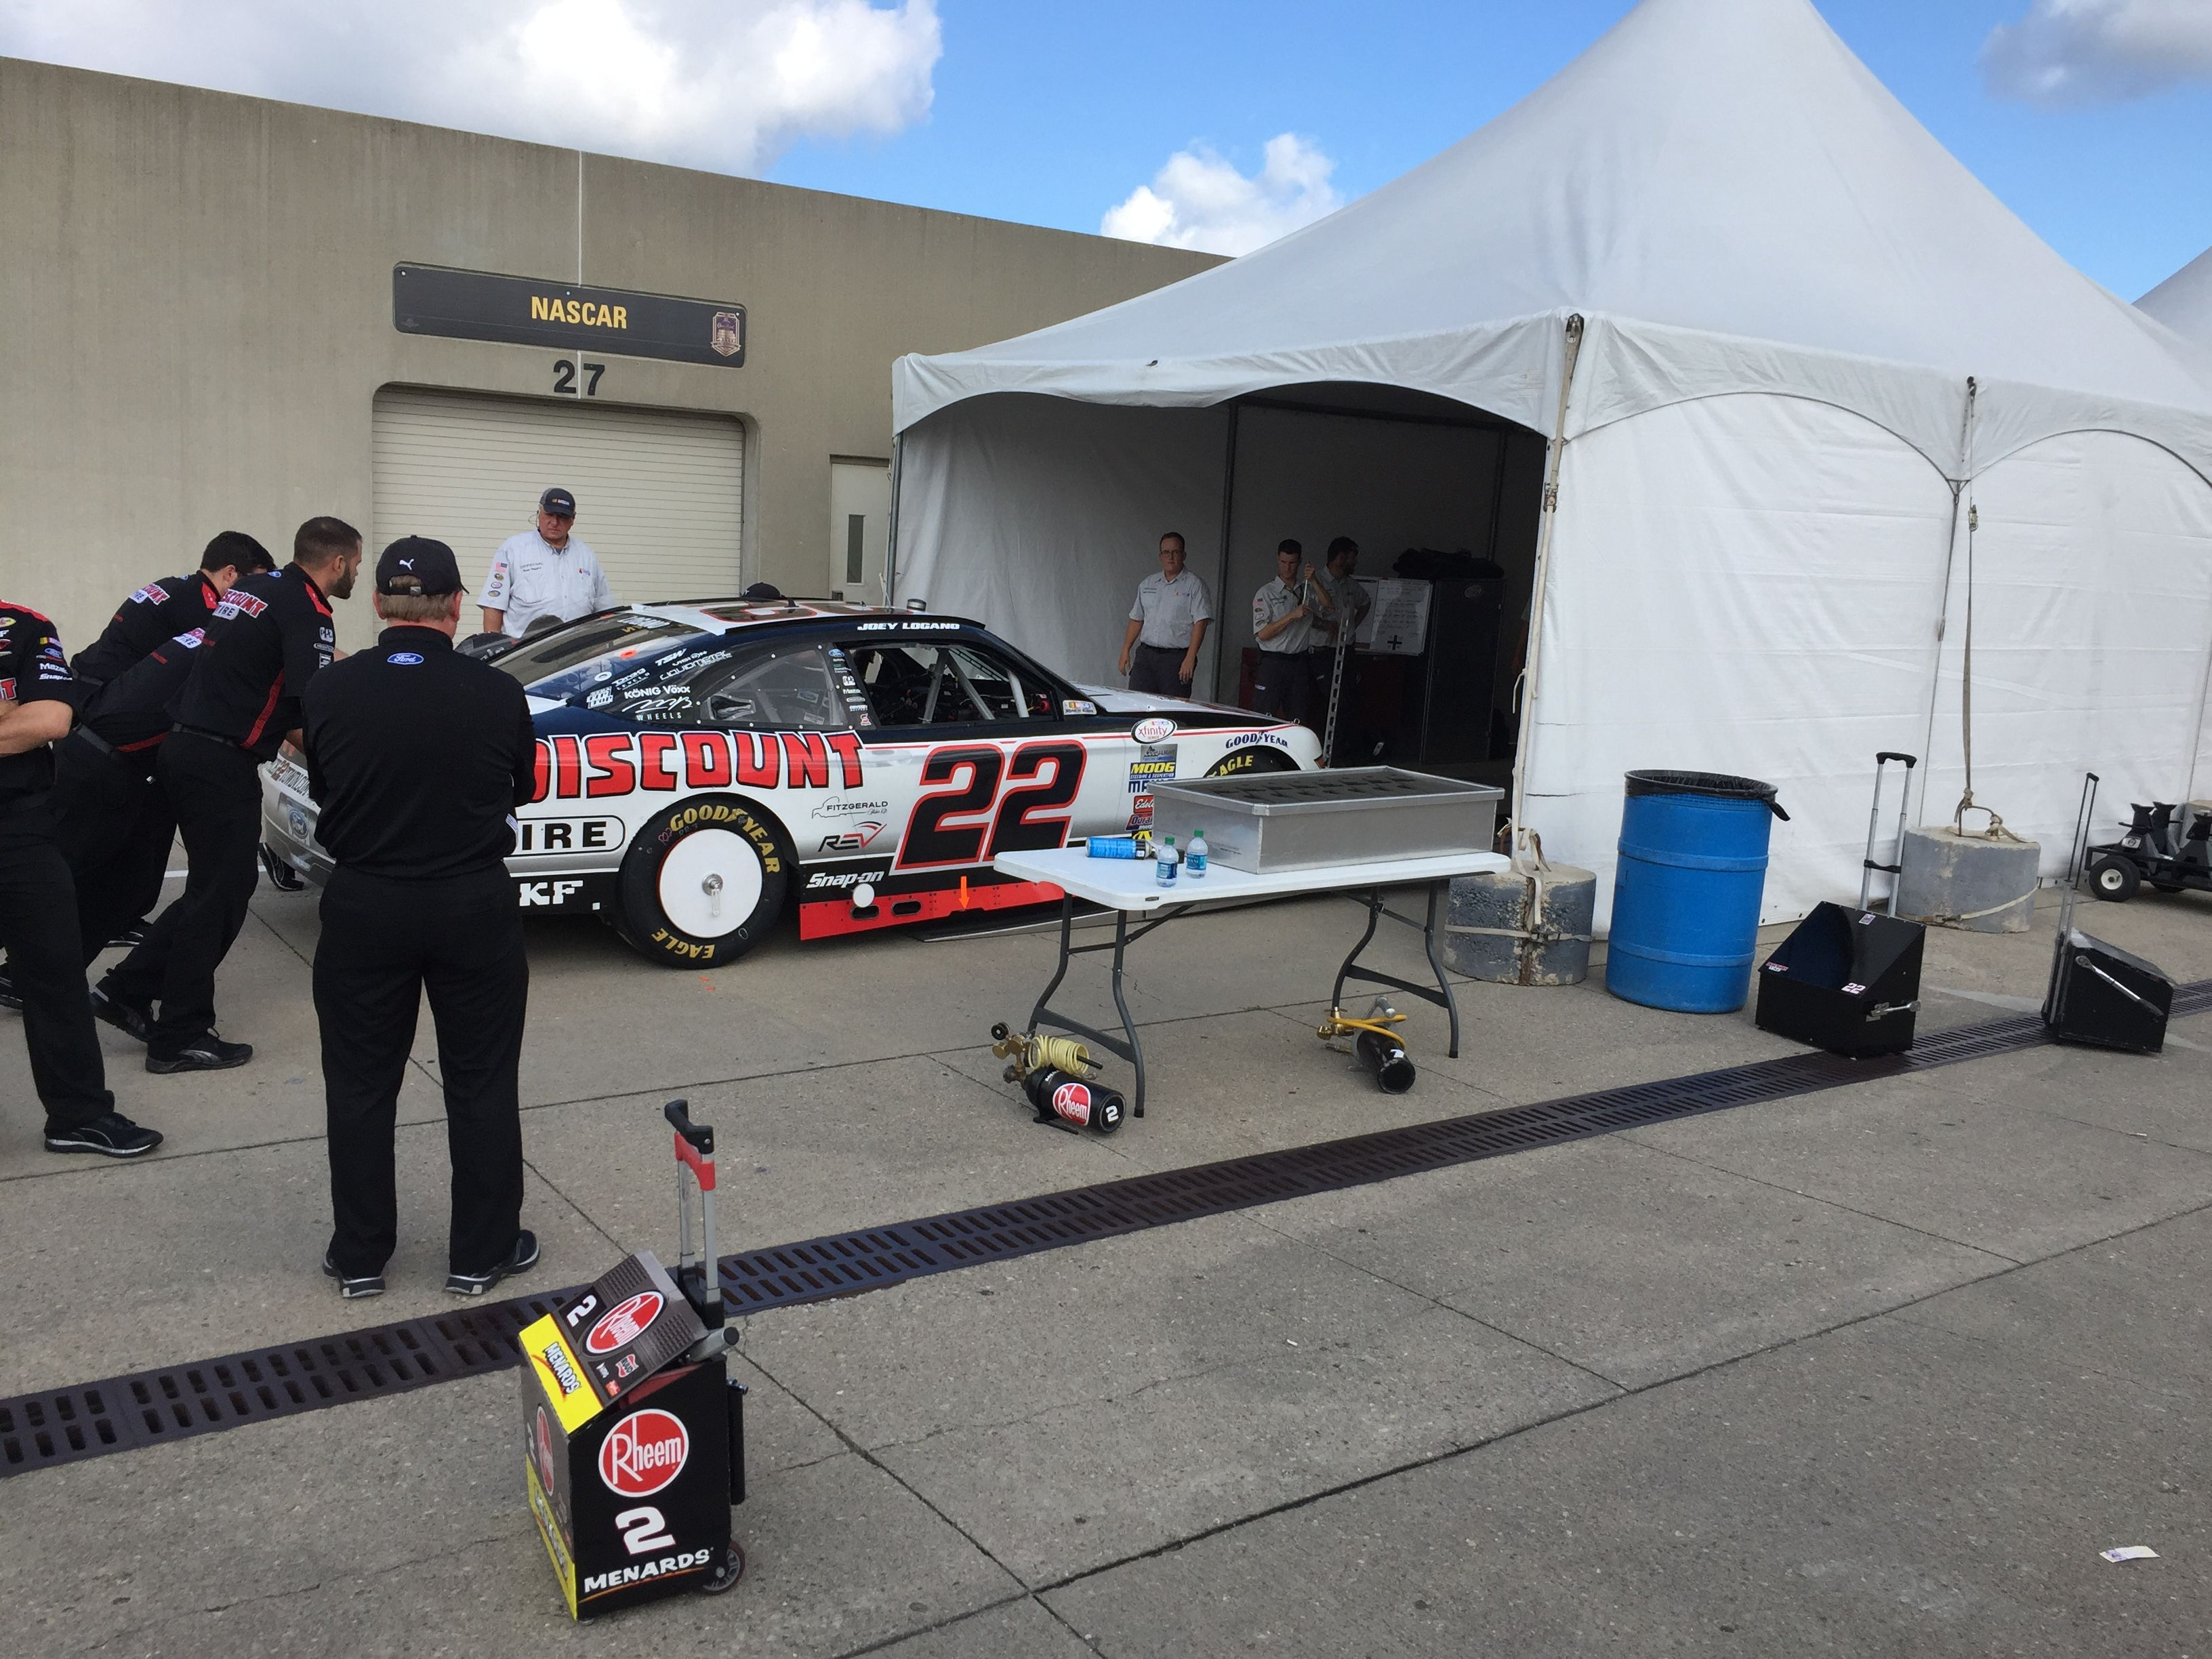 Inspection time at Indianapolis Motor Speedway